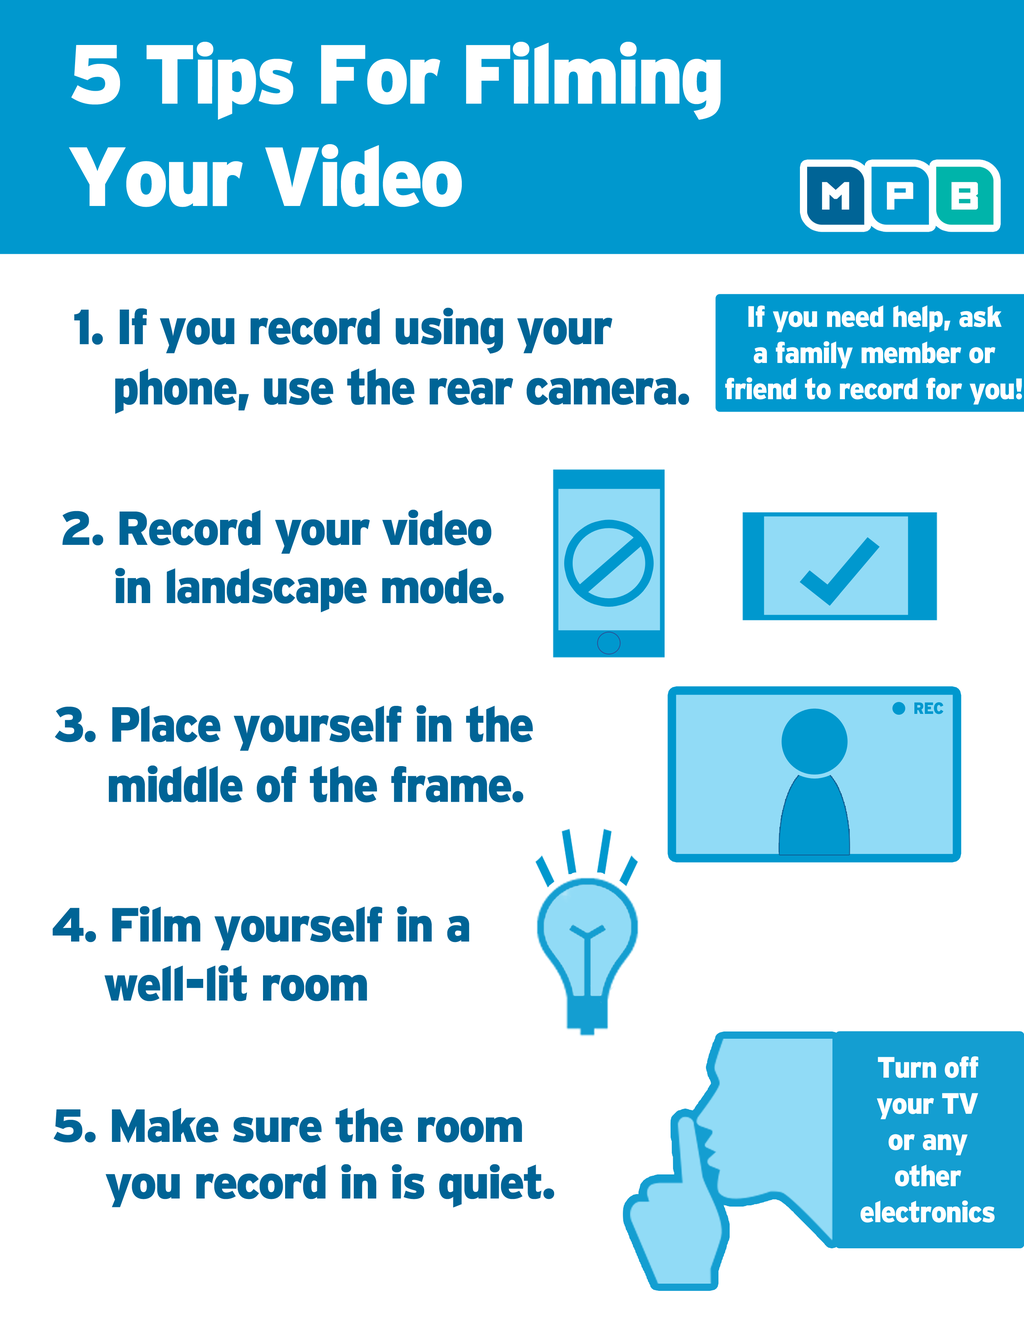 Video Submission Tips